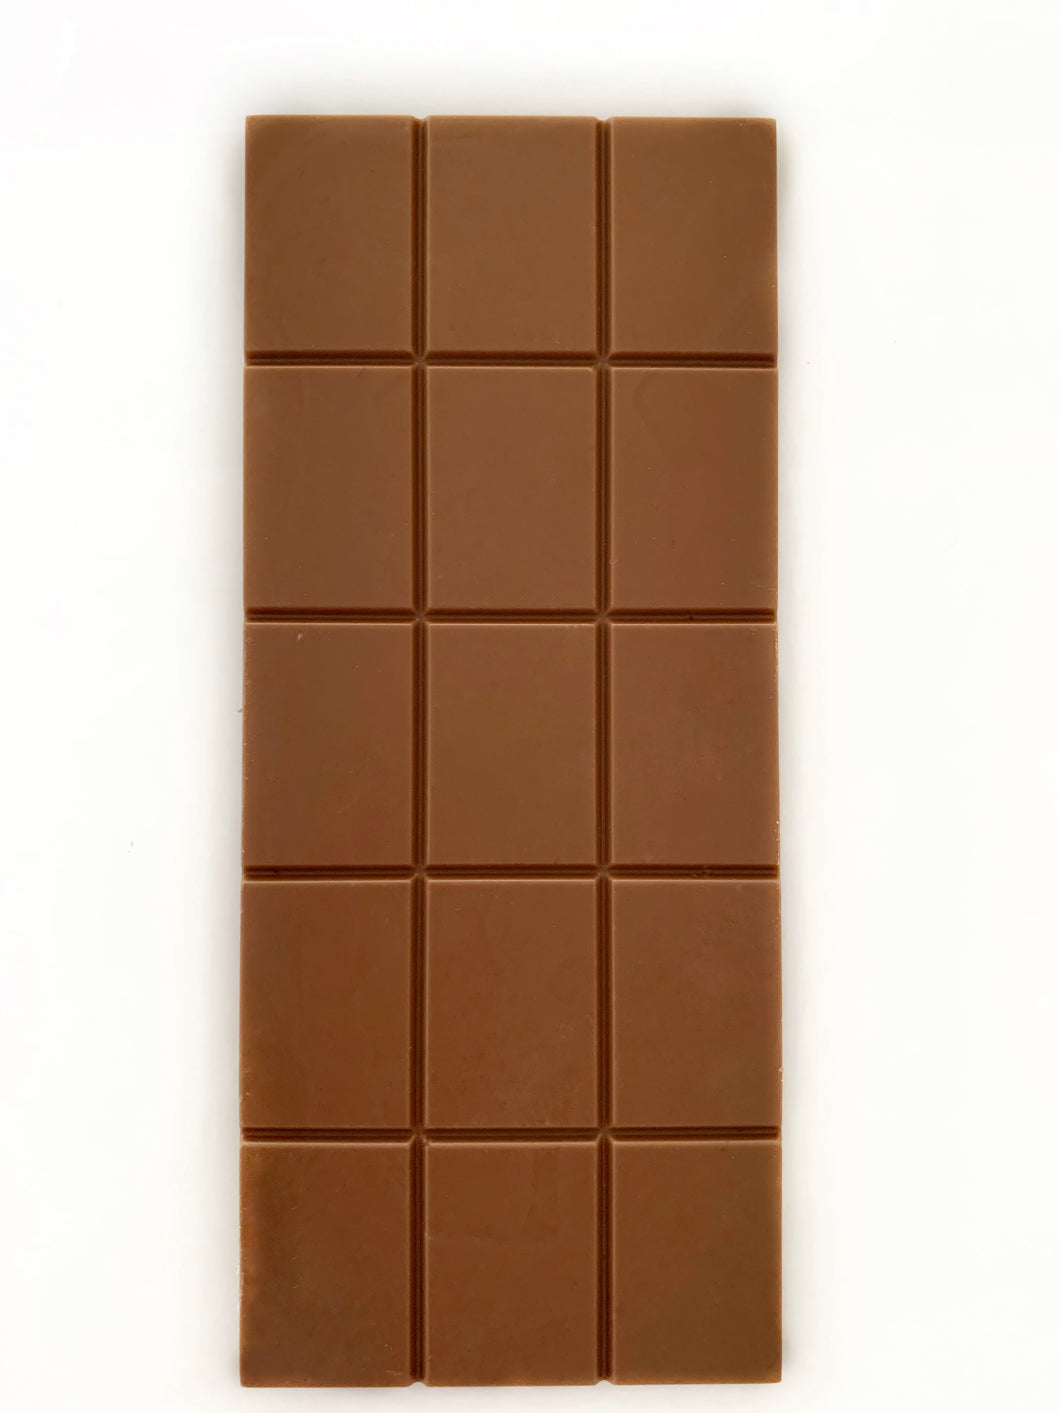 36% Milk Chocolate Bar (CBD)